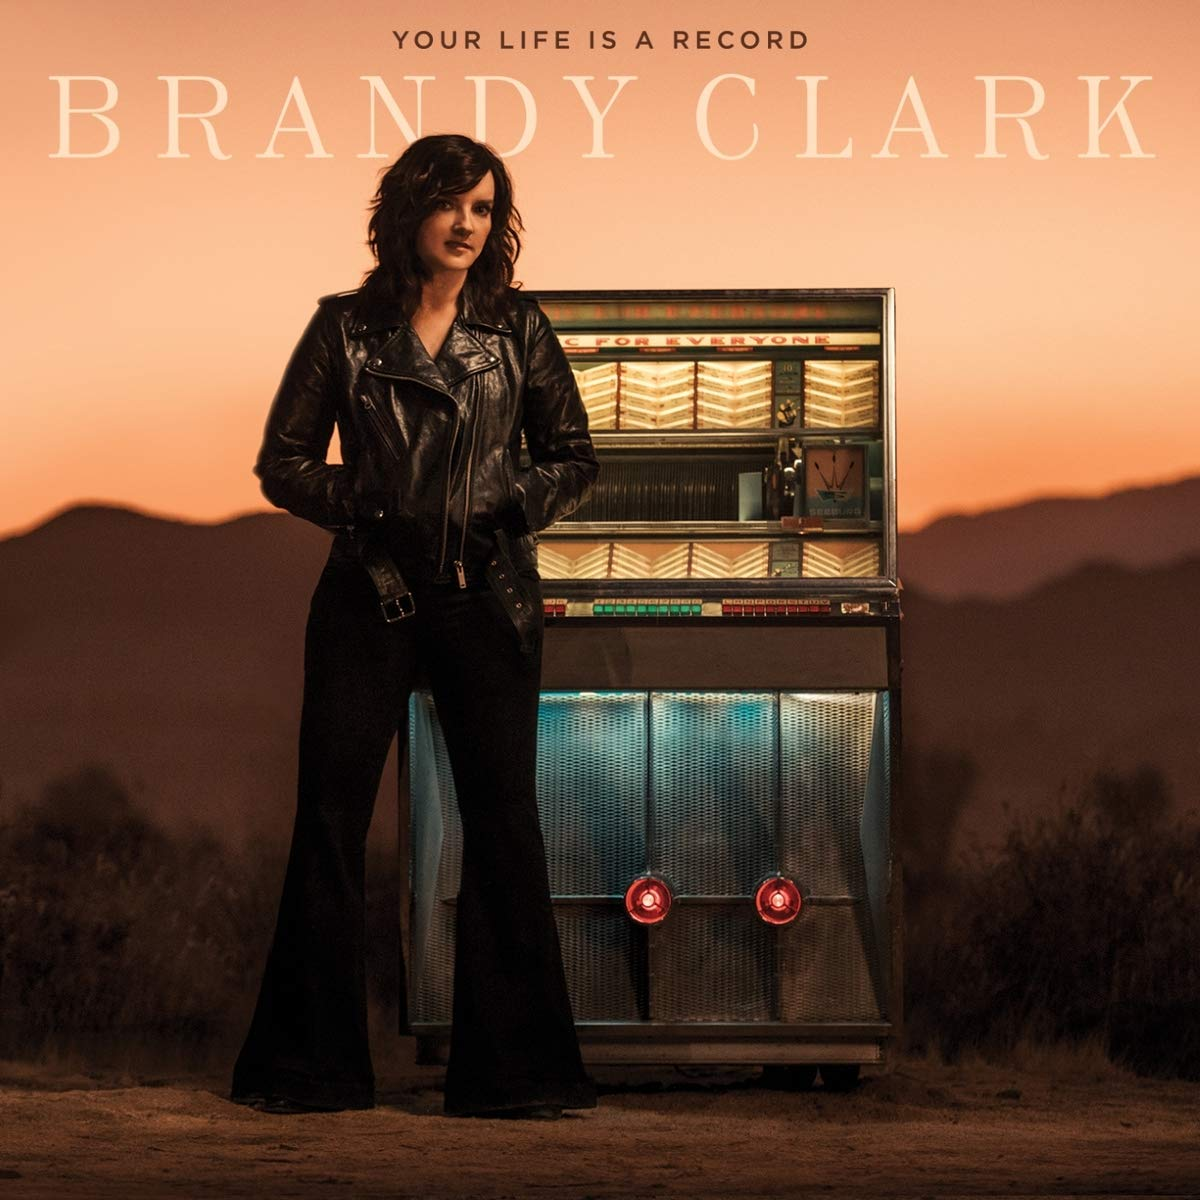 brandy clark your life is a record review